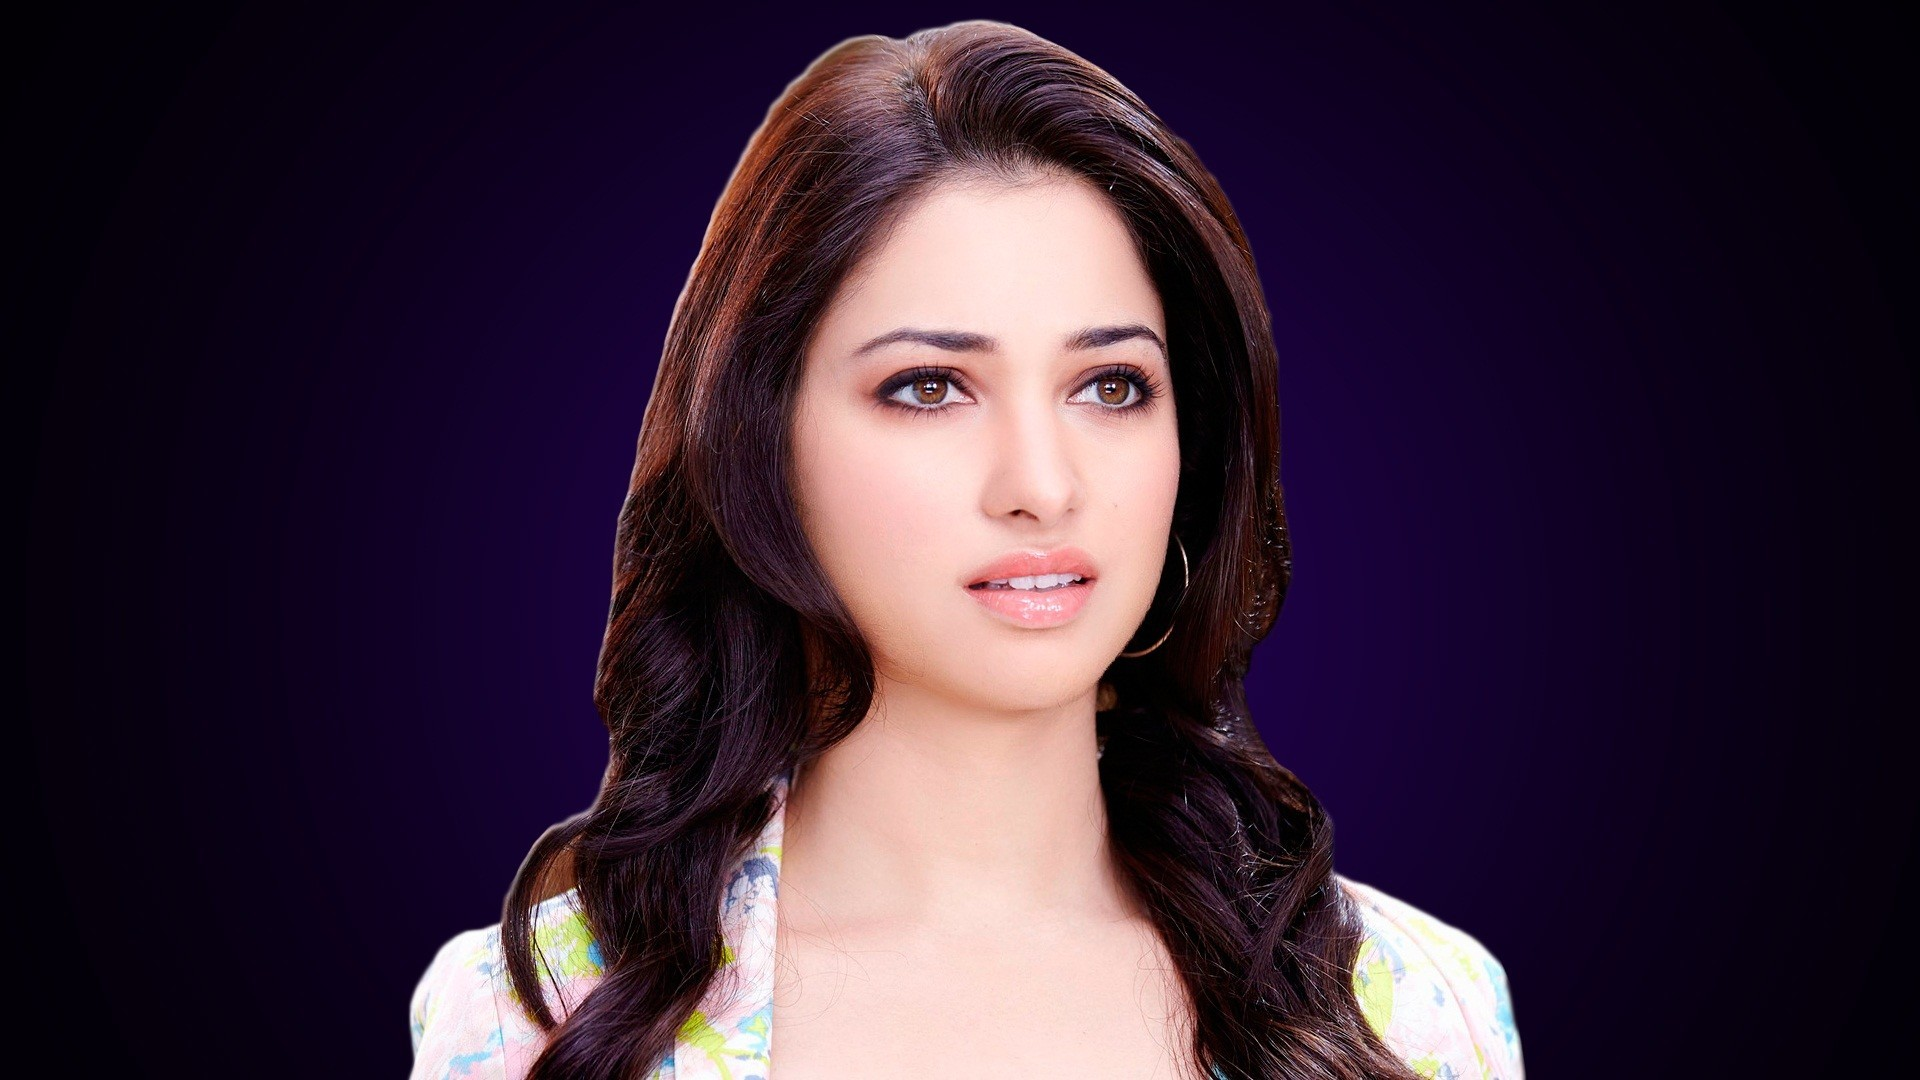 Tamanna Bhatia Wallpapers Hd 2018 66 Background Pictures